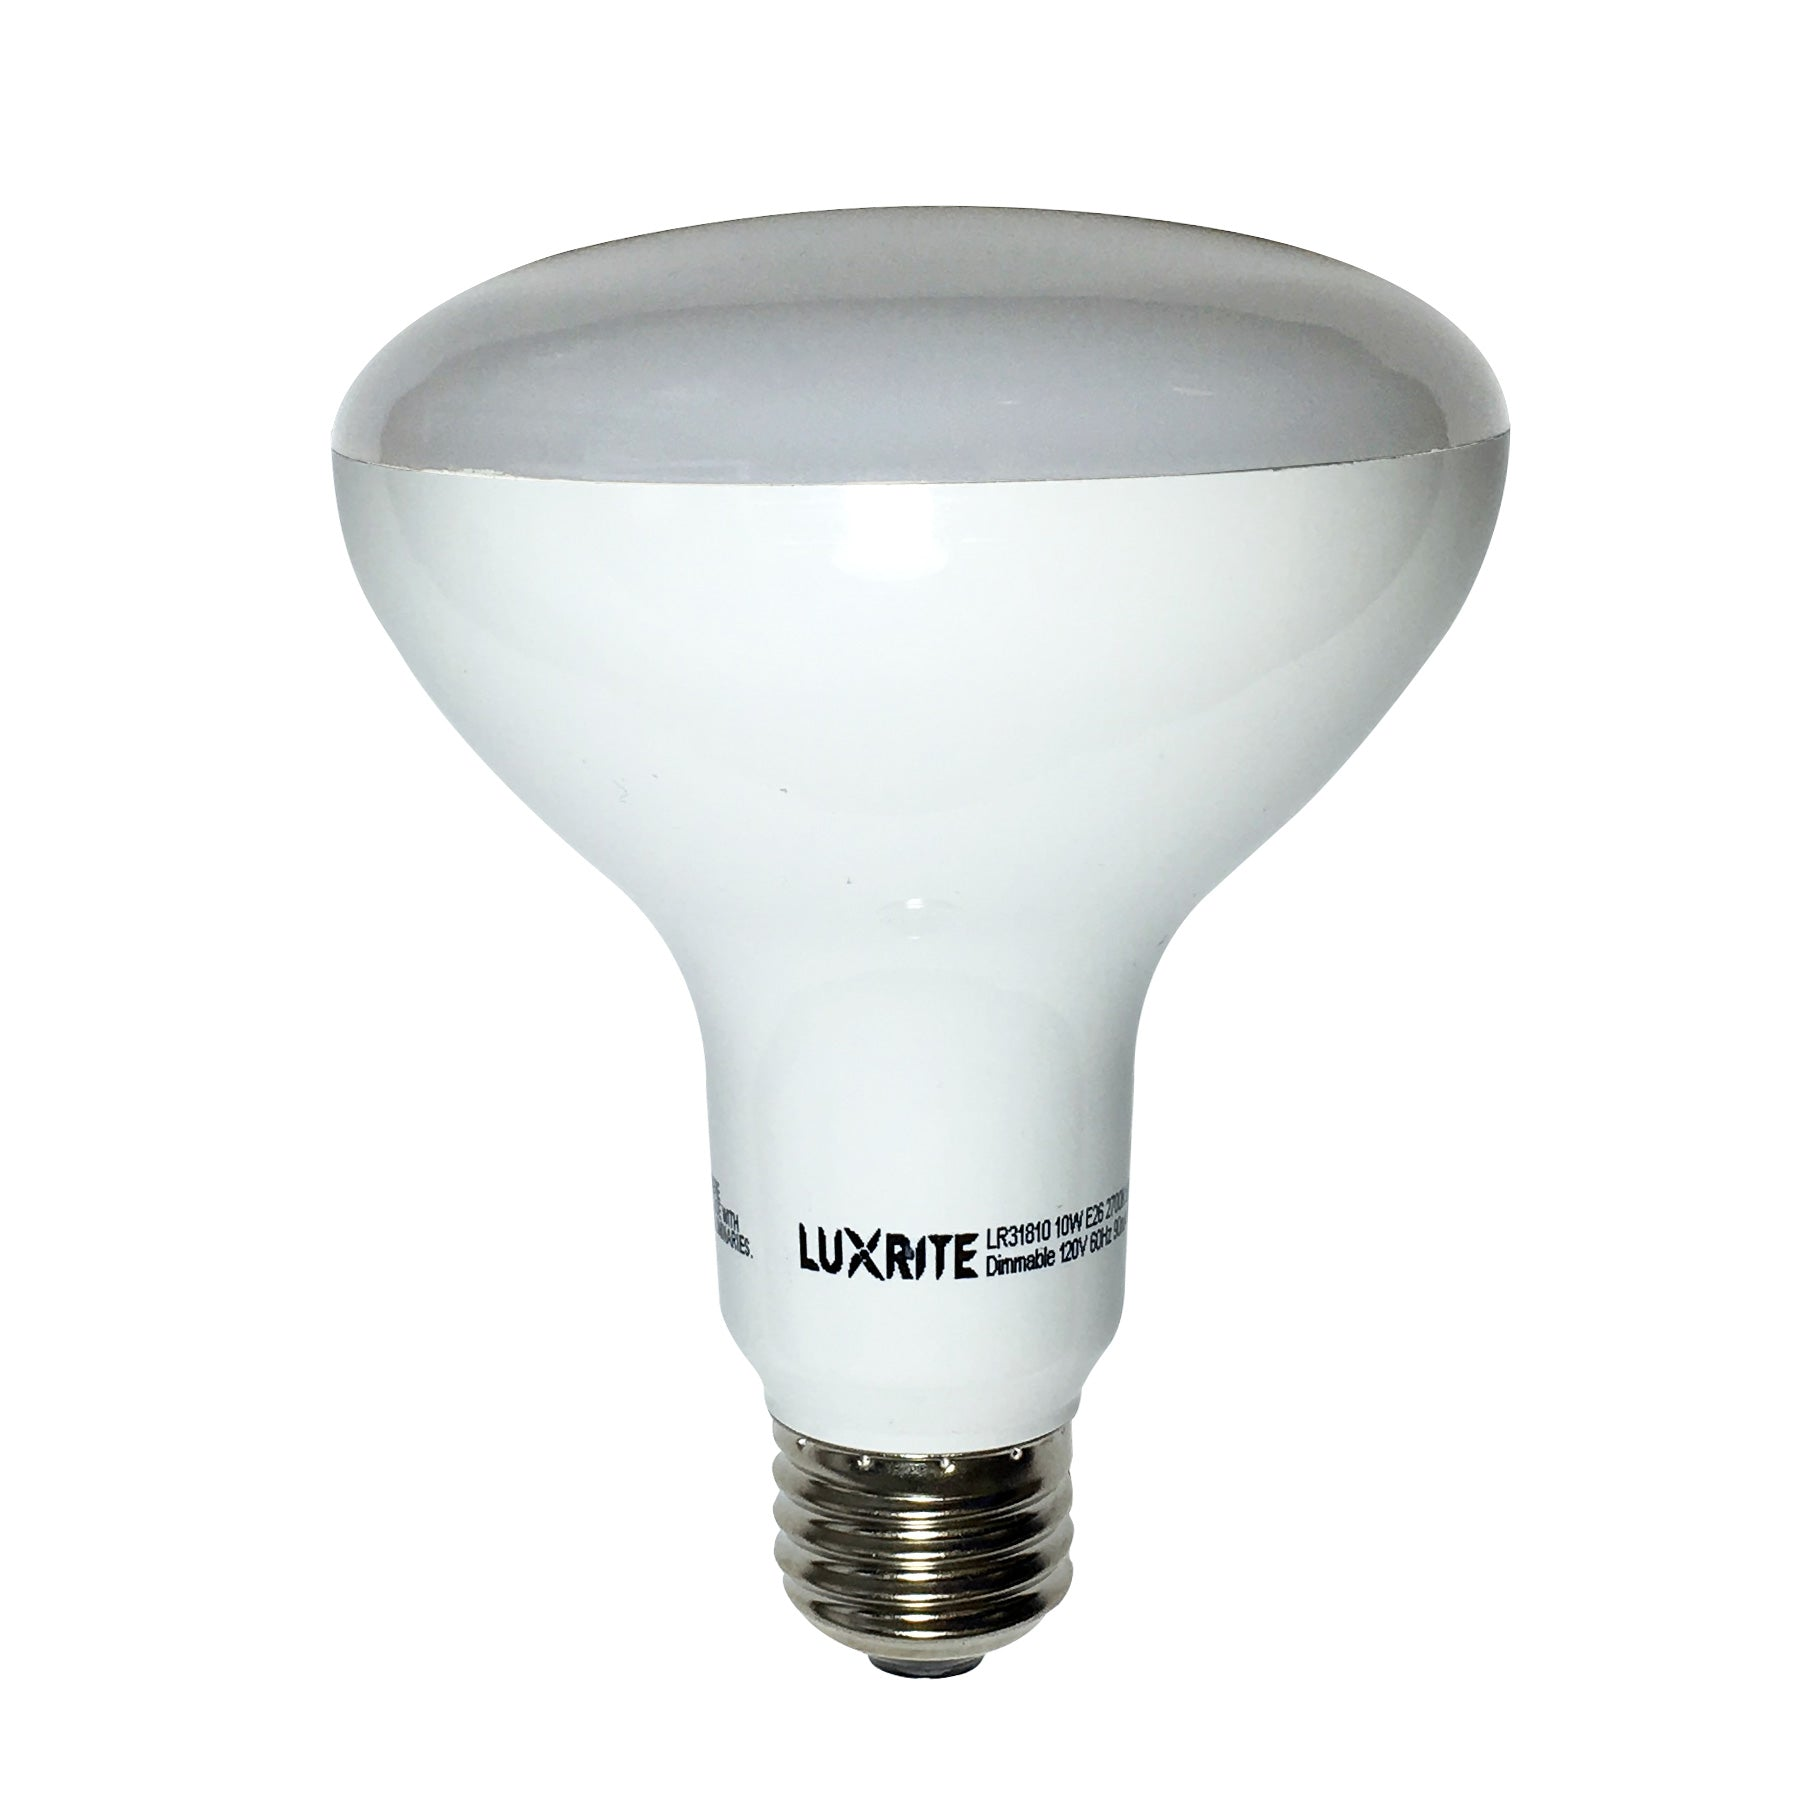 Luxrite 10W BR30 Dimmable LED Warm White 2700K Light Bulb